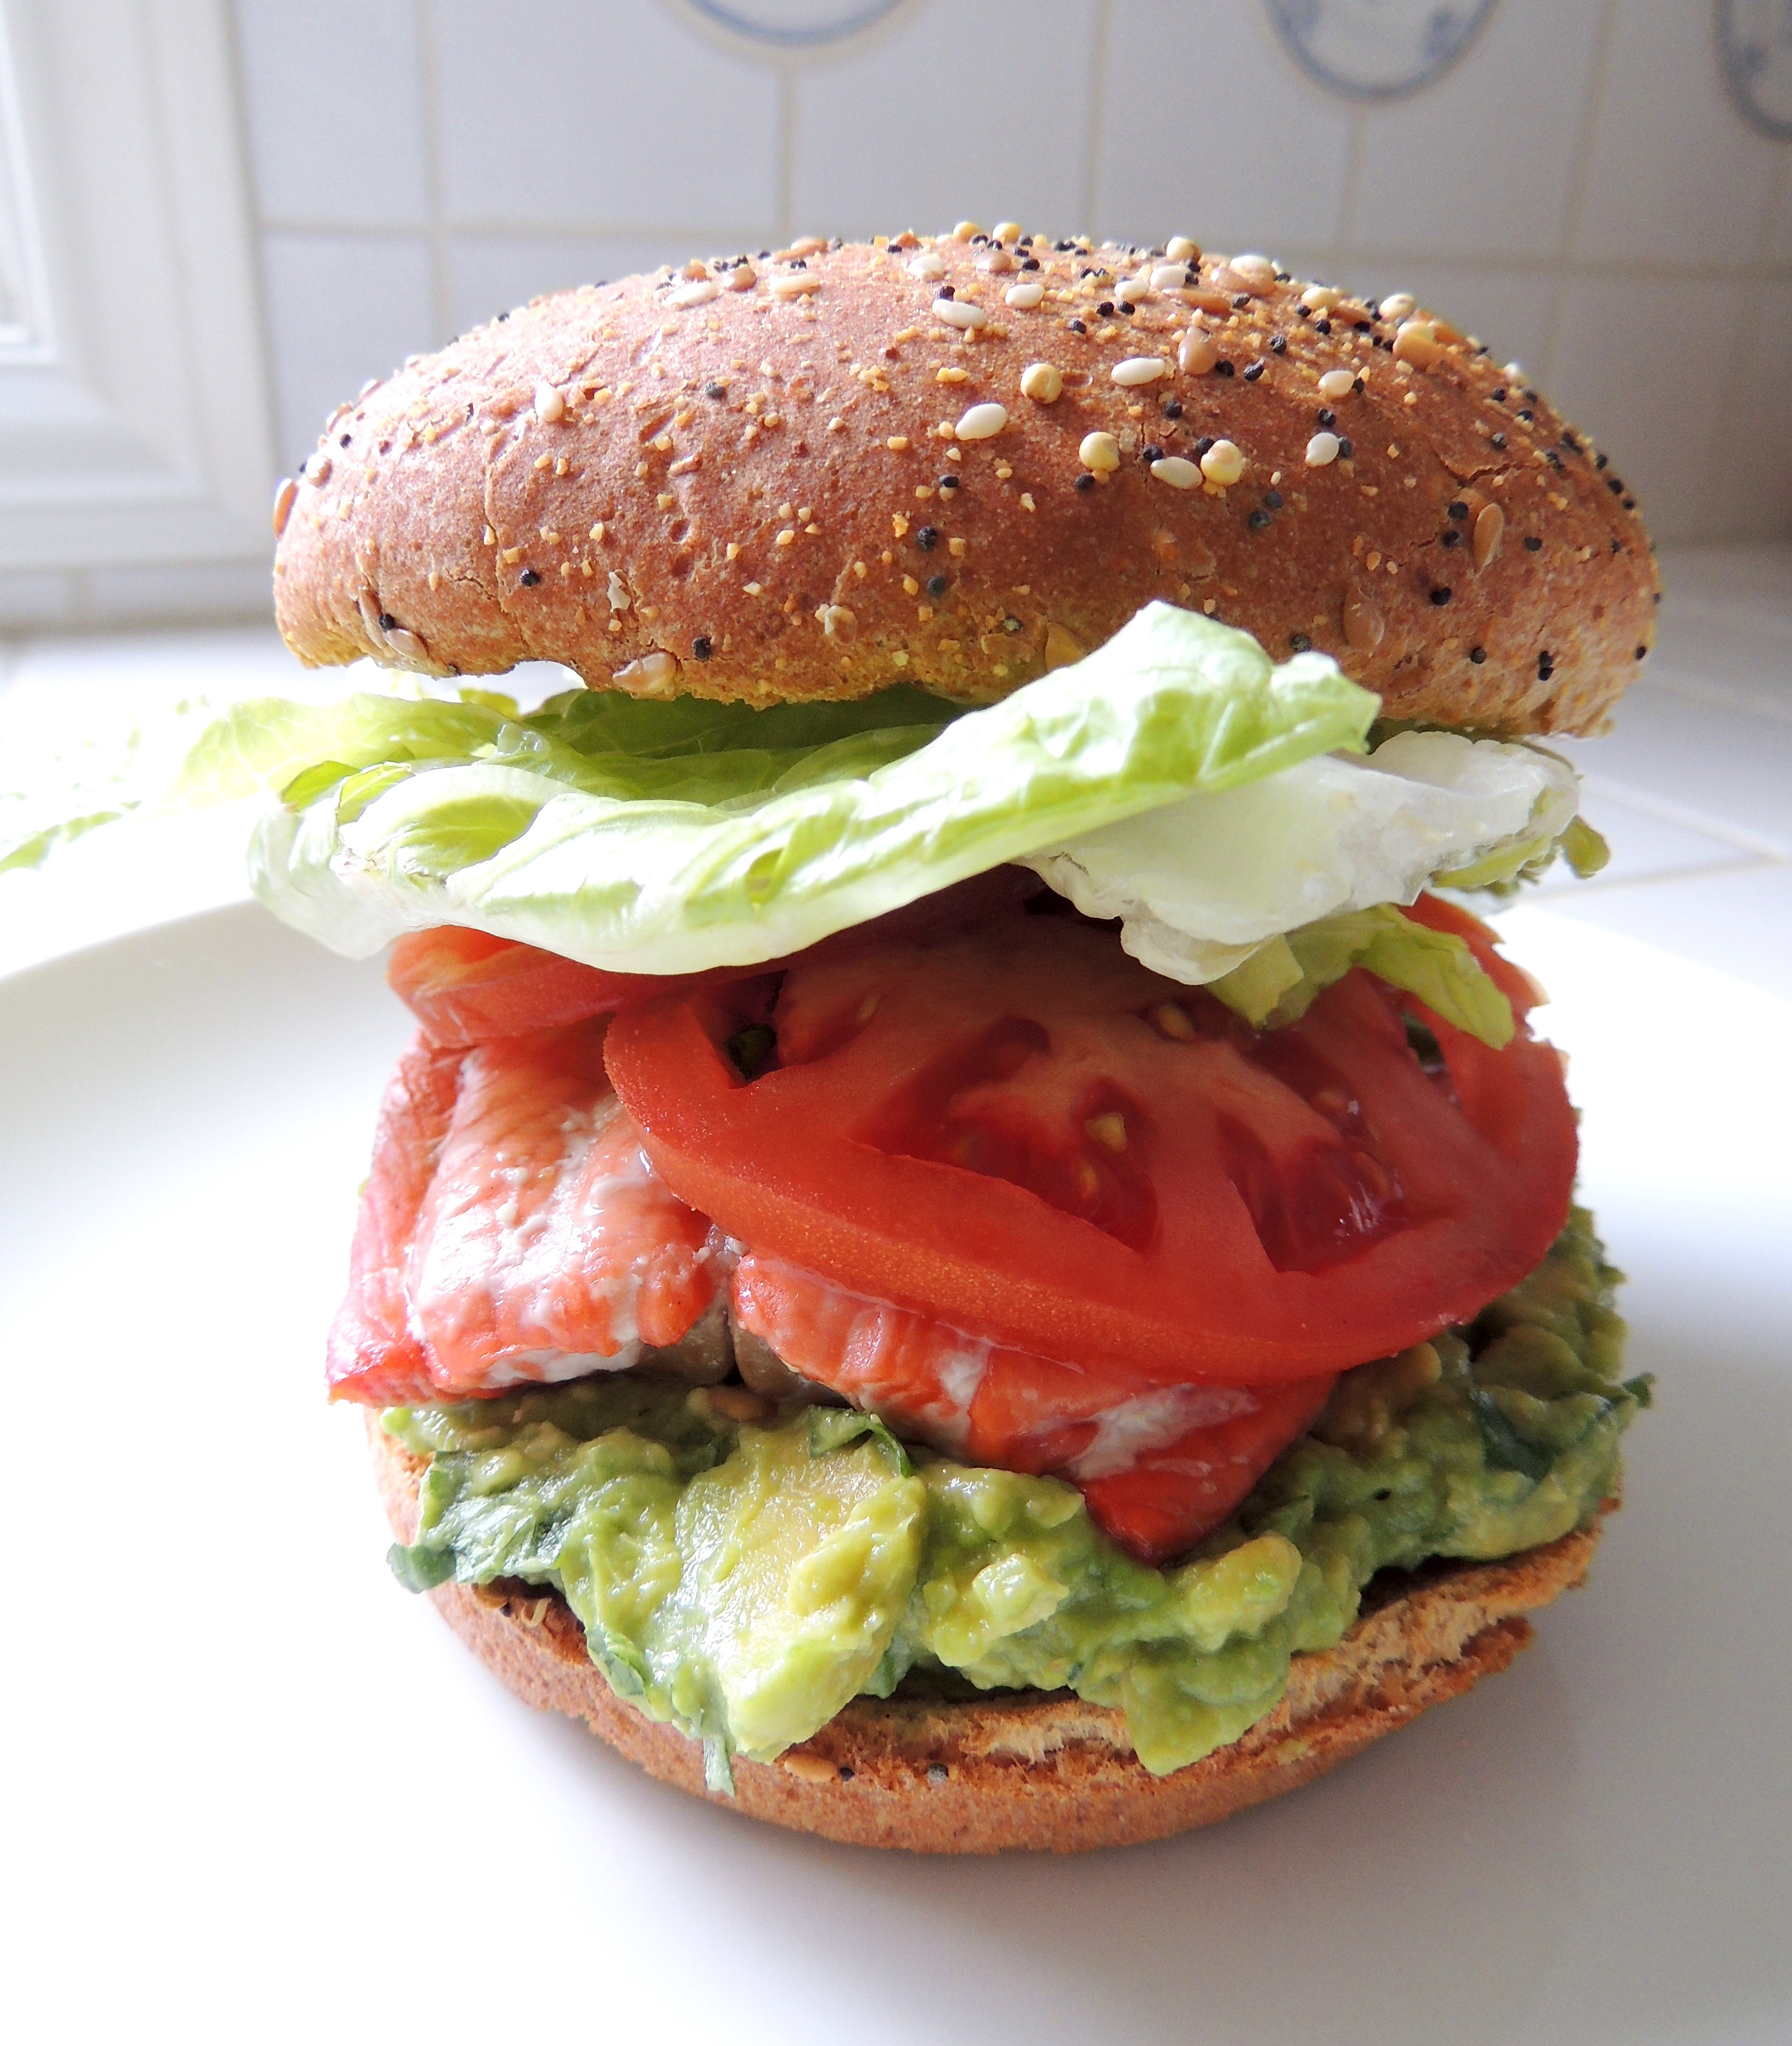 Living Healthy In Seattle: Grilled Salmon Sandwich With Guac